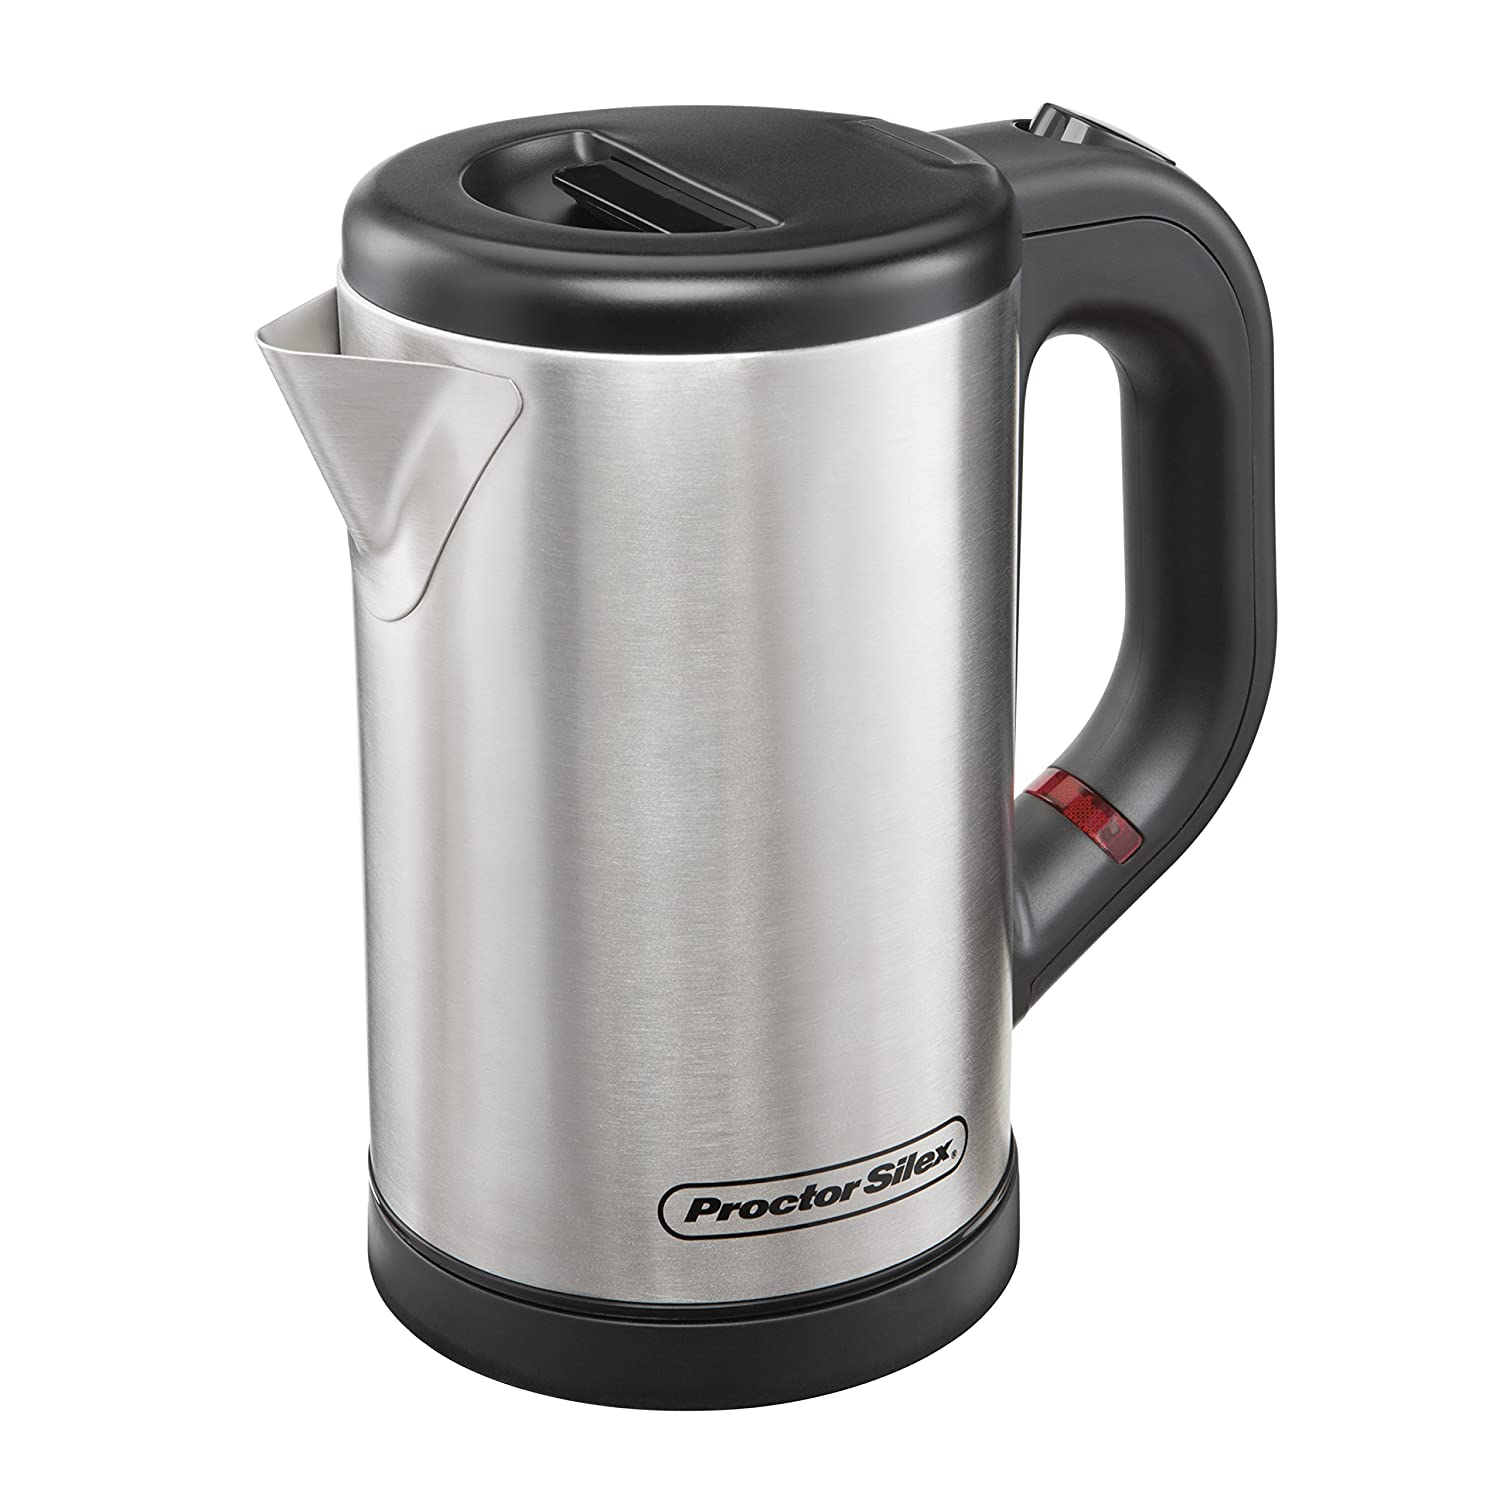 Proctor Silex 40940 Compact Electric Kettle, .5 Liter, Stainless Steel